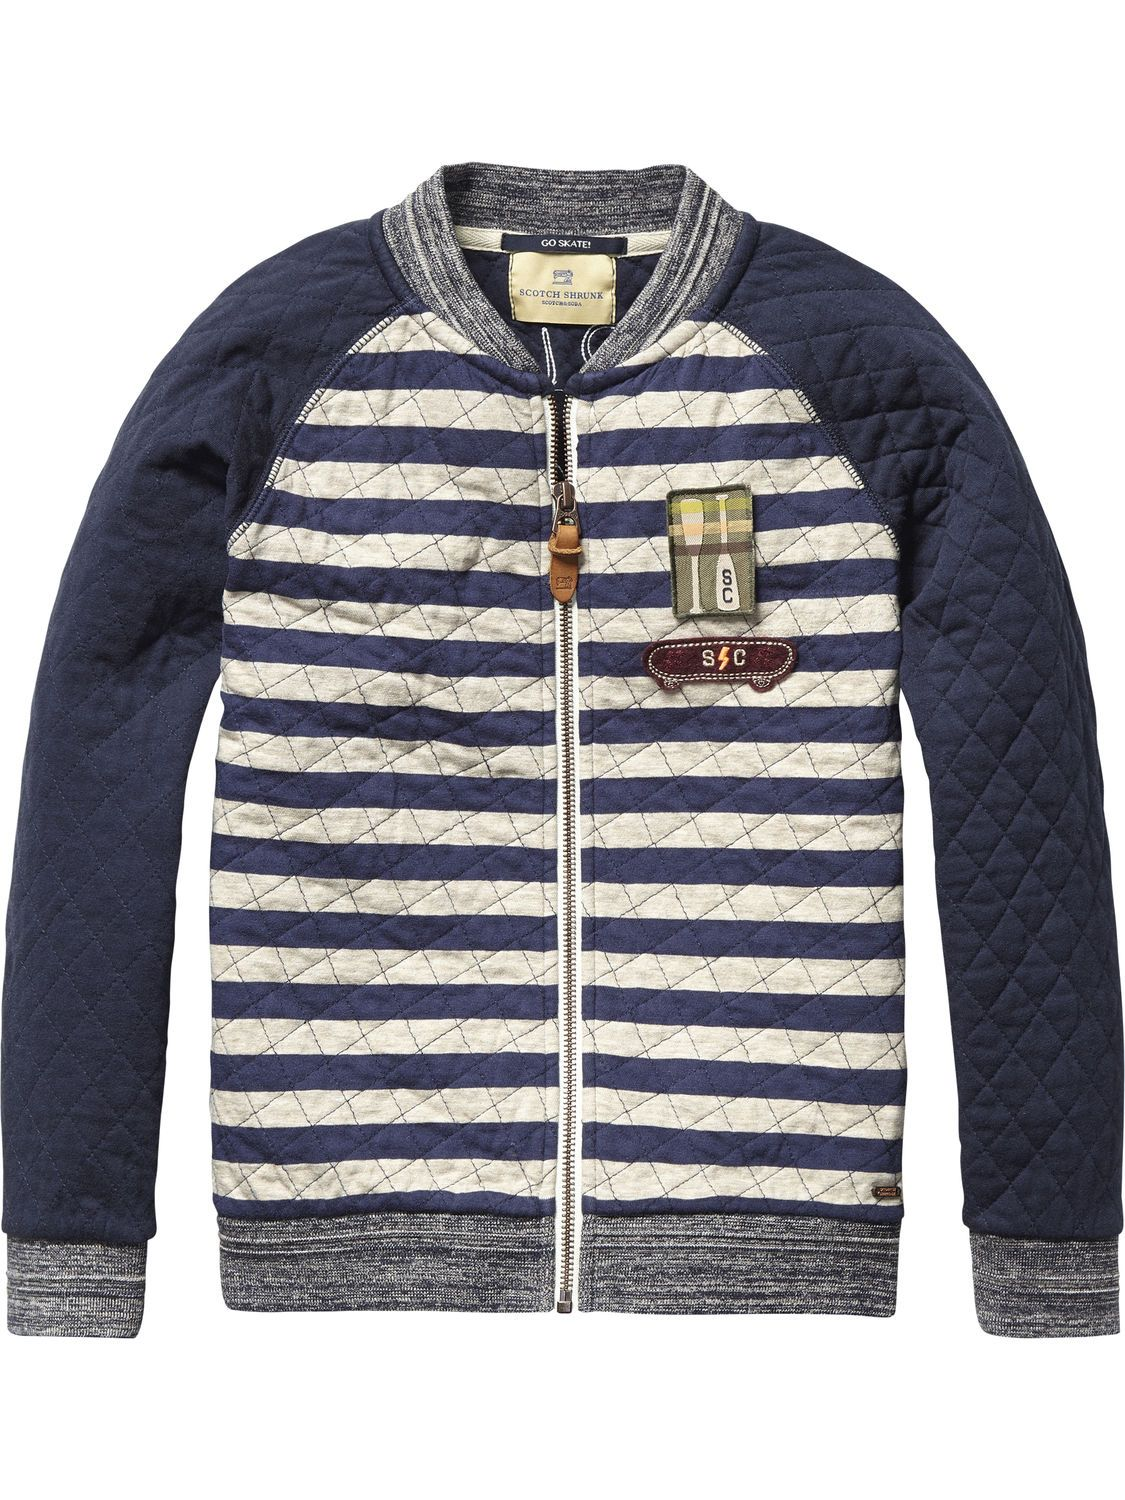 Quilted Varsity Jacket Inbetween Jackets Boys Clothing At Scotch